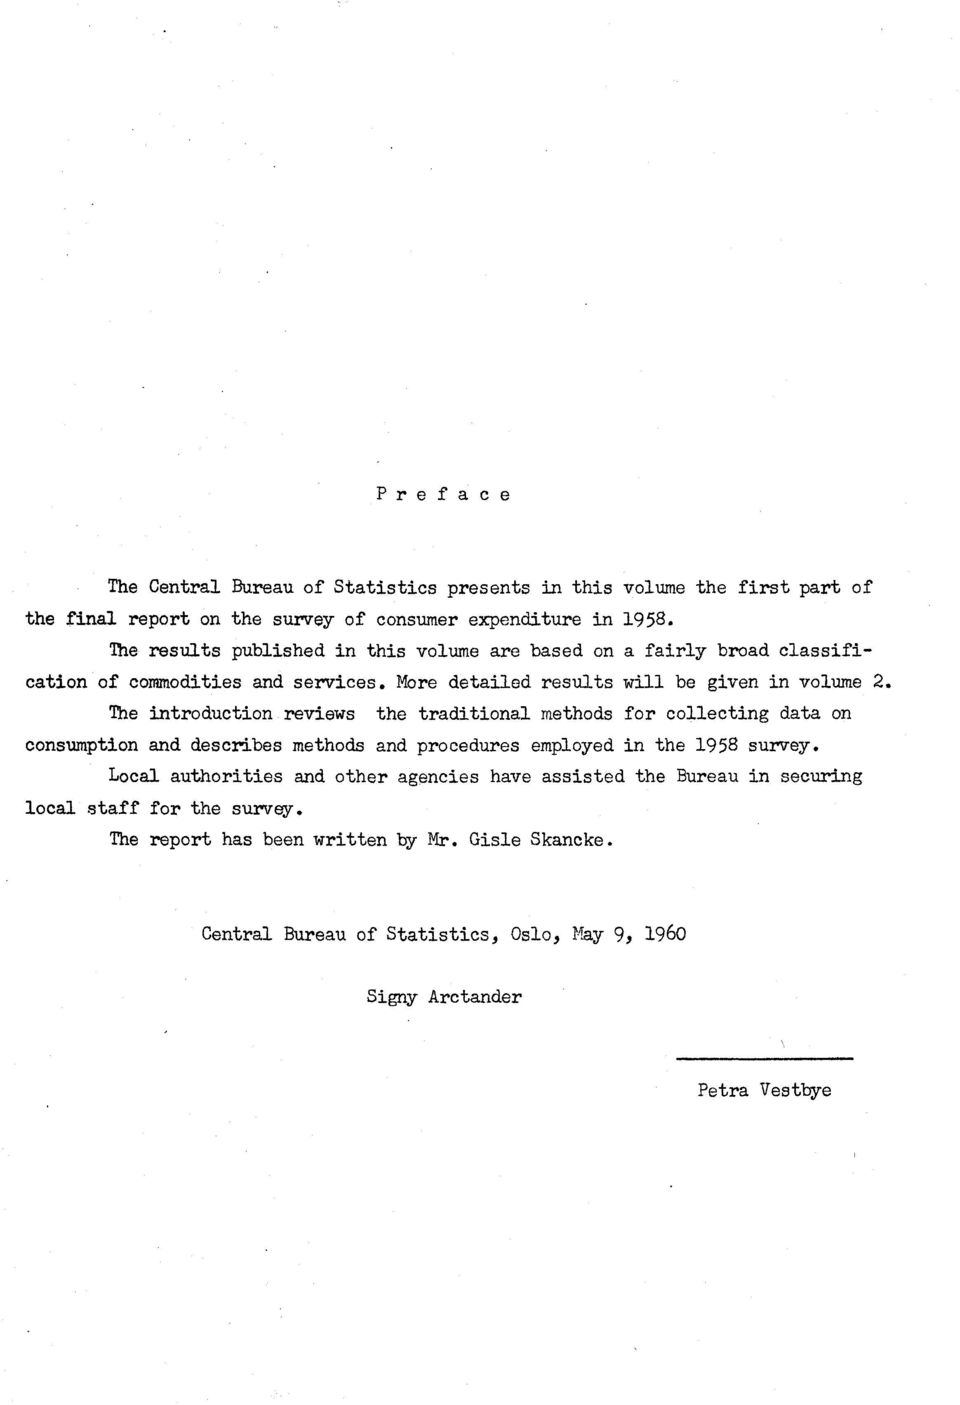 The introduction reviews the traditional methods for collecting data on consumption and describes methods and procedures employed in the 1958 survey.